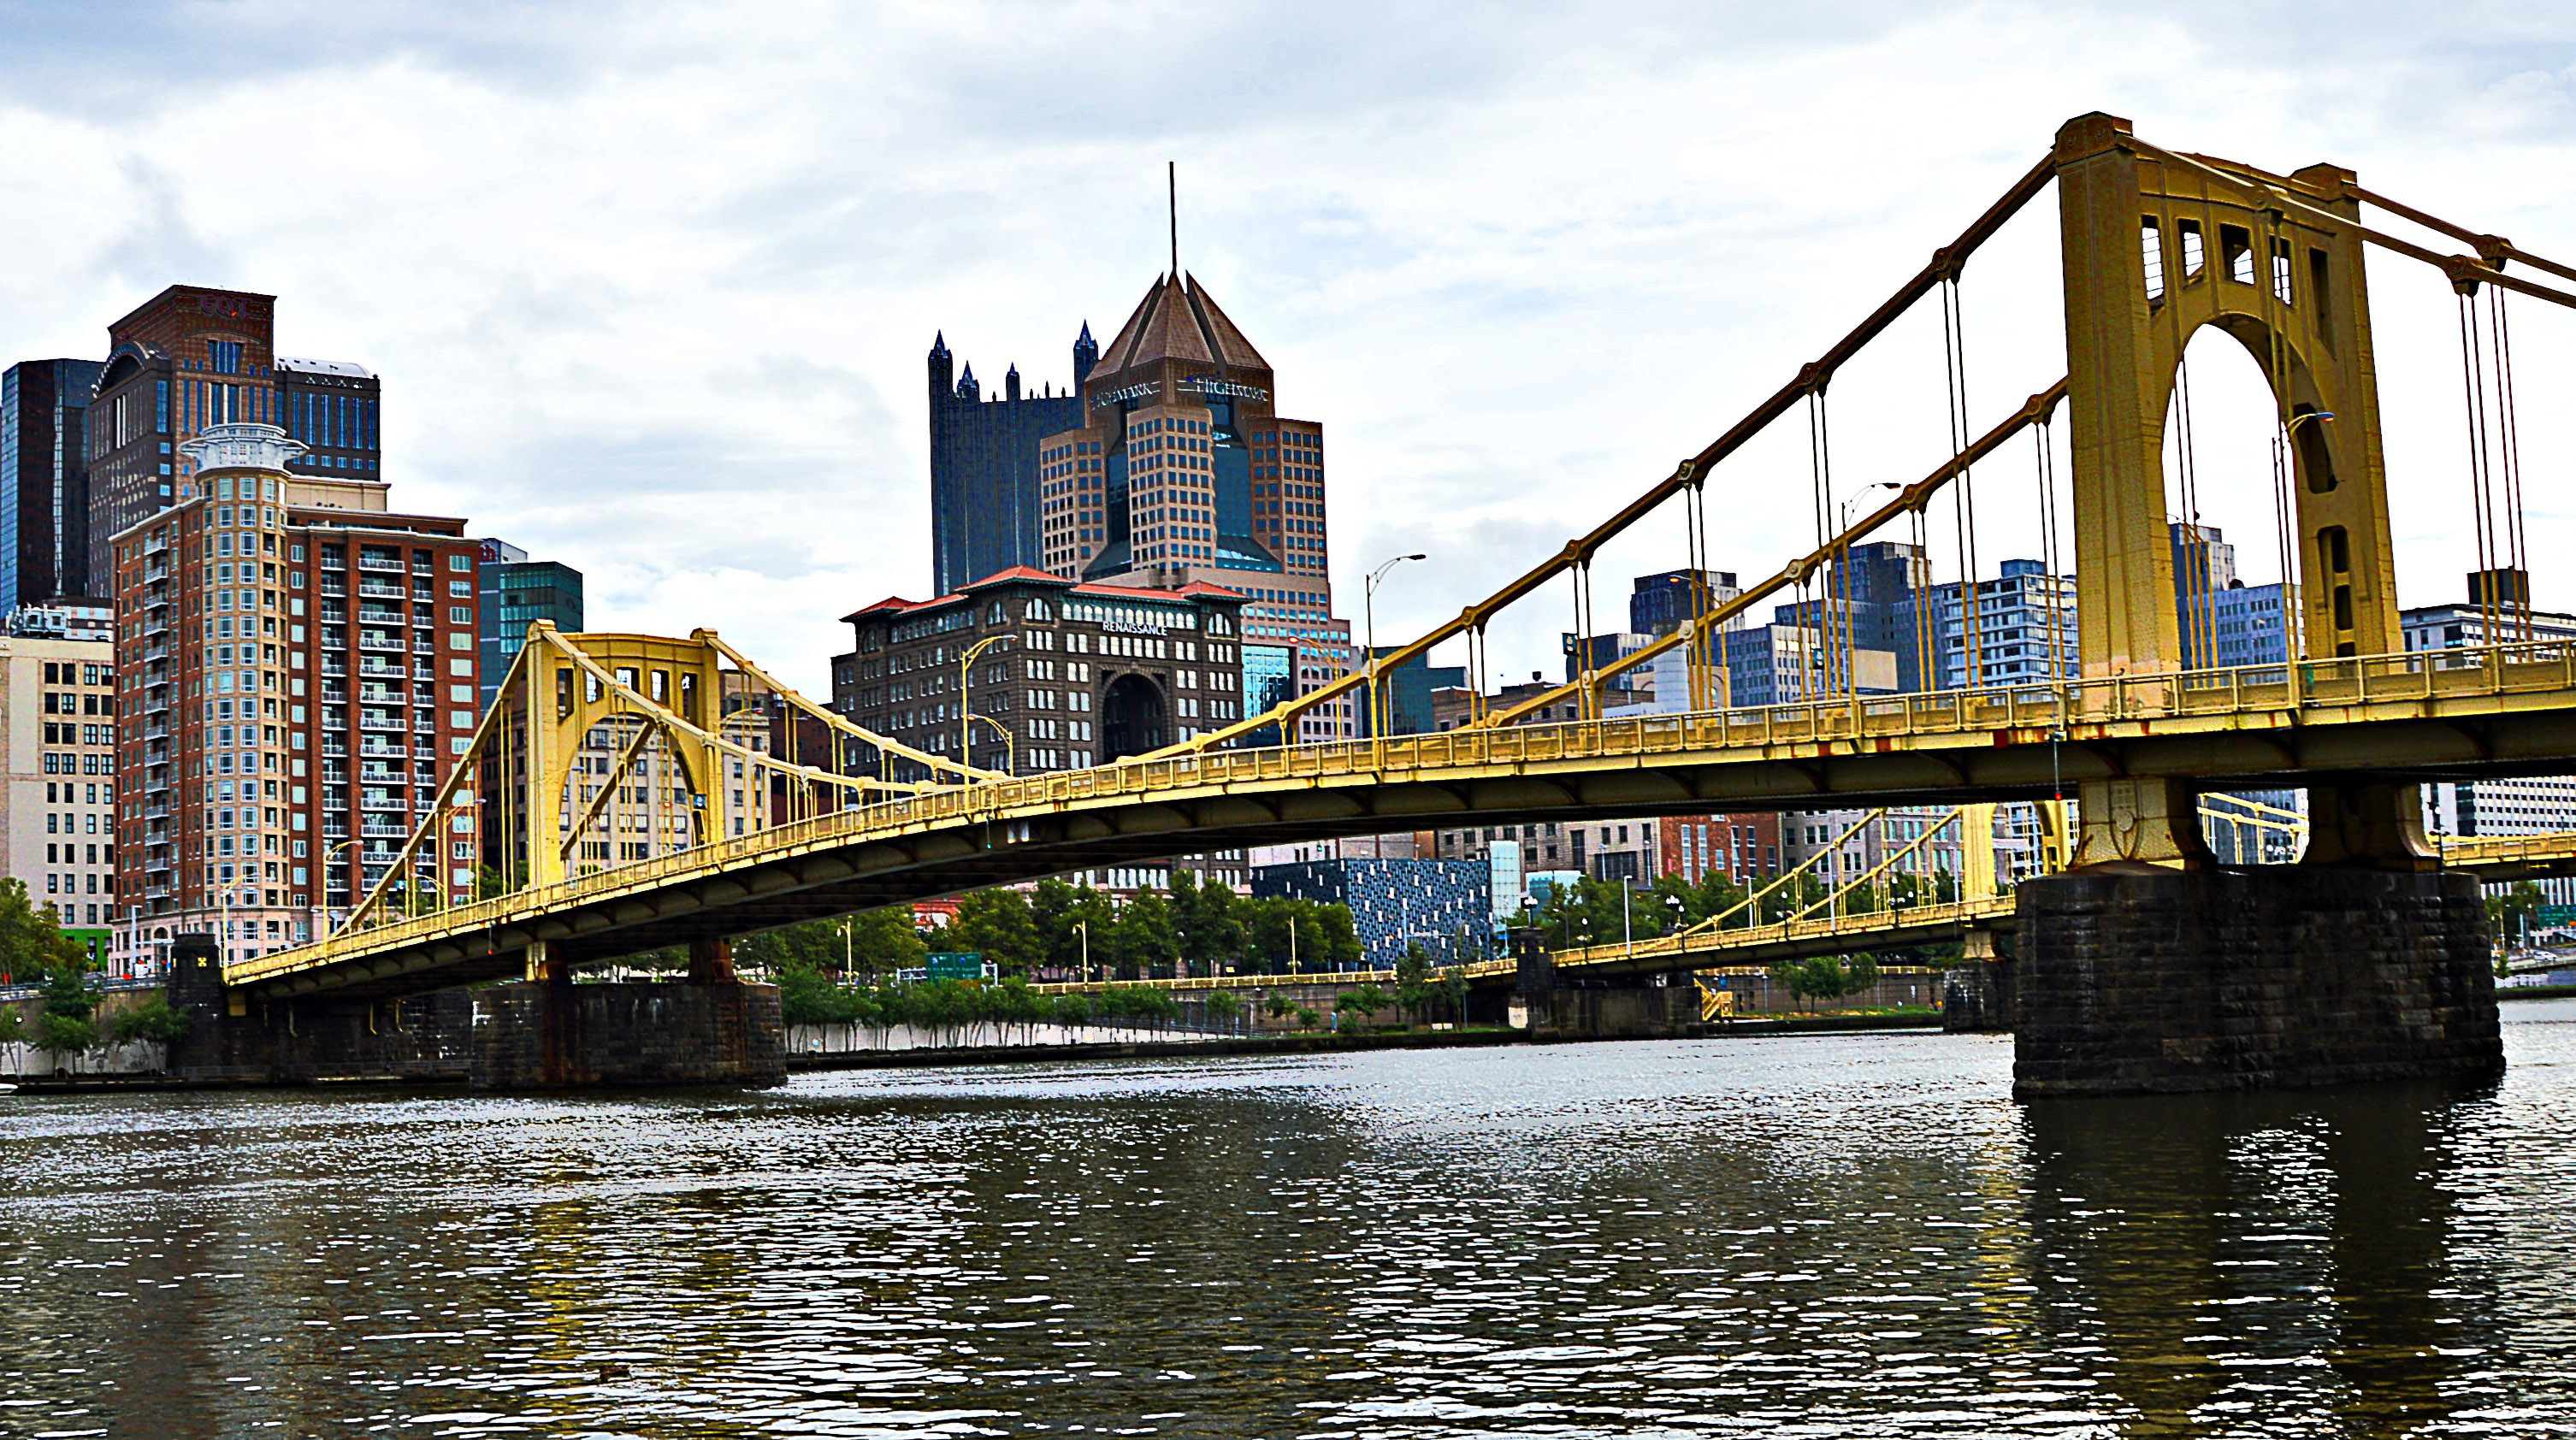 bridge-over-the-river-in-pittsburgh-pennsylvania